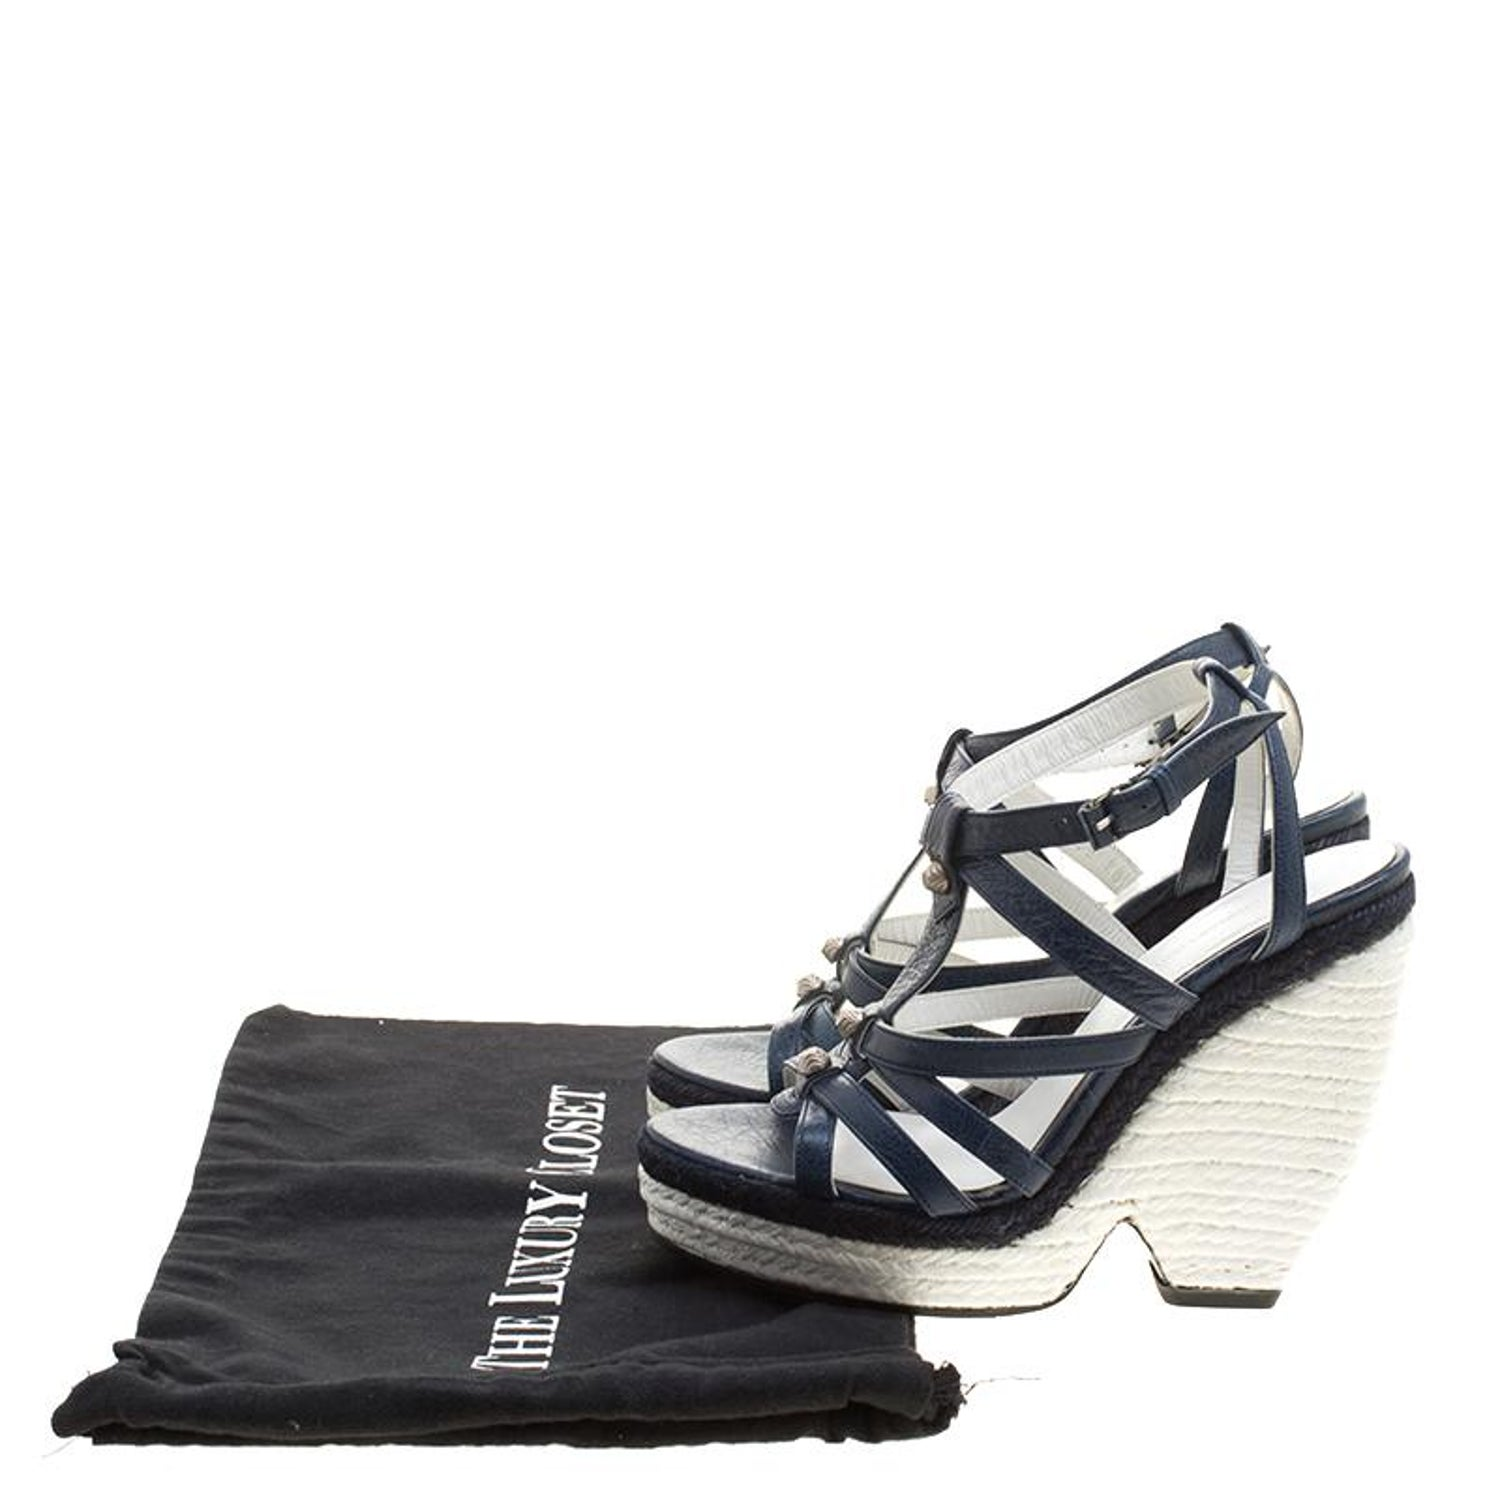 f5375b872 Balenciaga Blue White Leather Espadrille Wedge Sandals Size 38 For Sale at  1stdibs